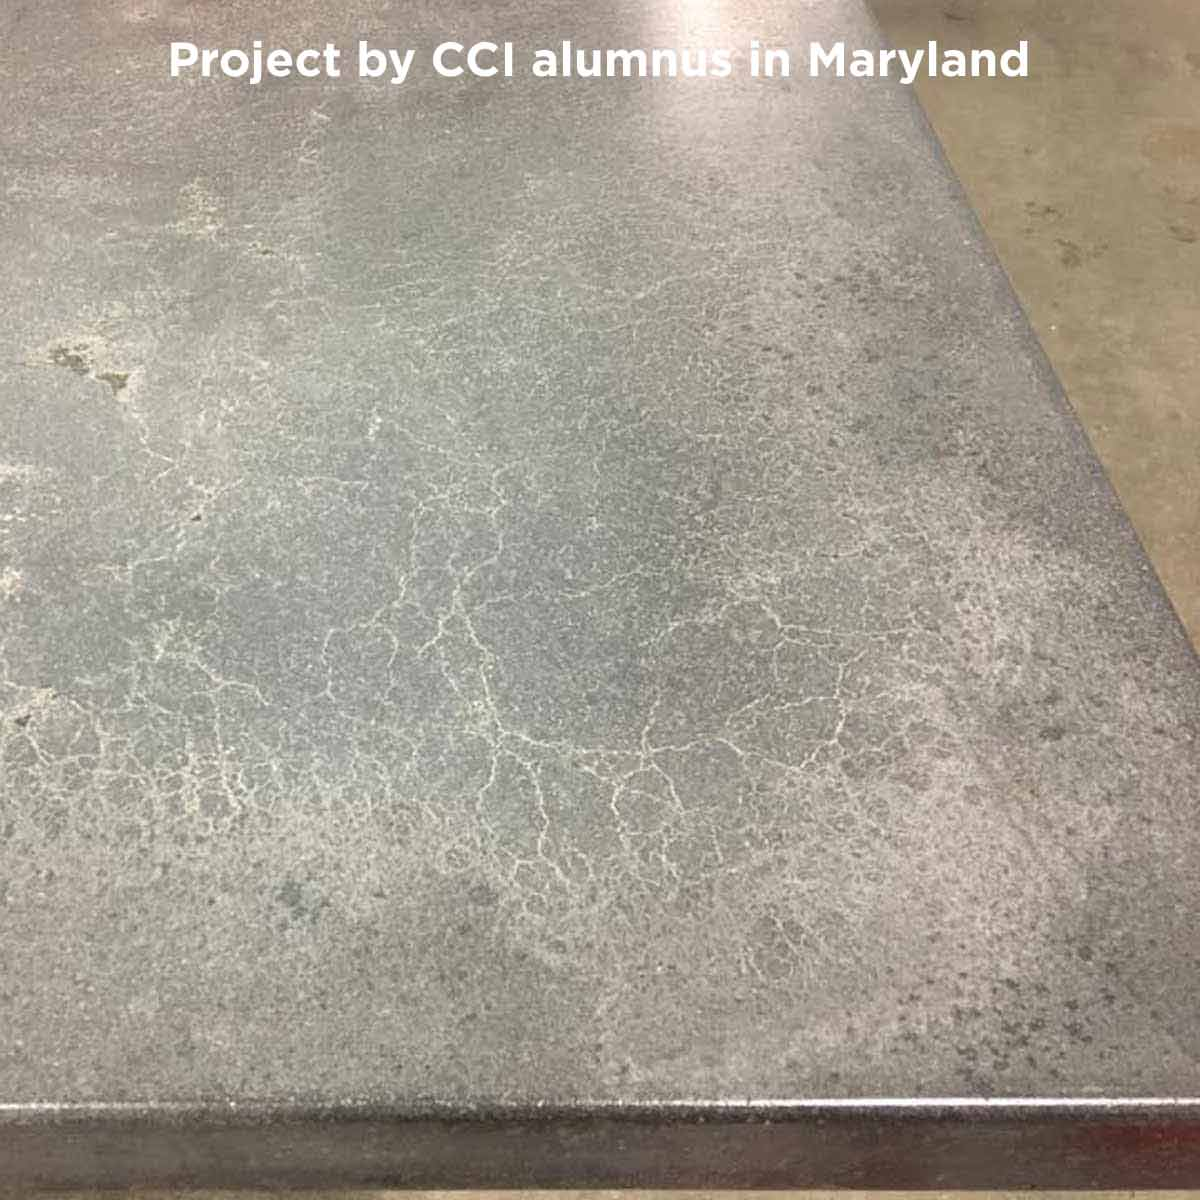 Omega Concrete Countertop Sealer Concrete Countertop Institute